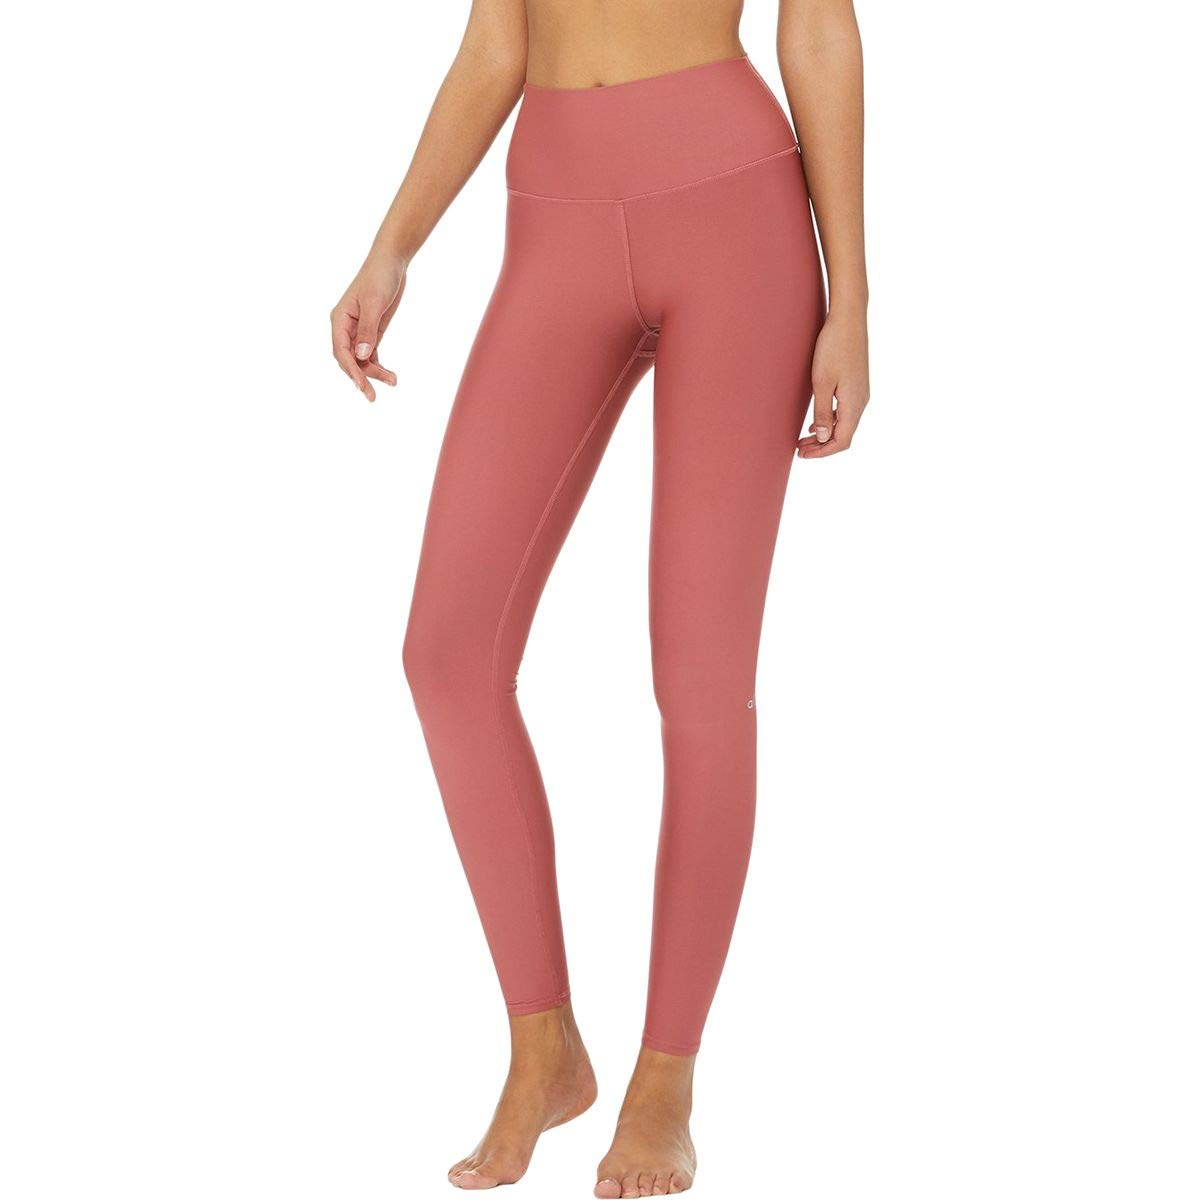 Alo Yoga High-Waist Airlift Legging - Women's Rosewood, M by Alo Yoga (Image #1)